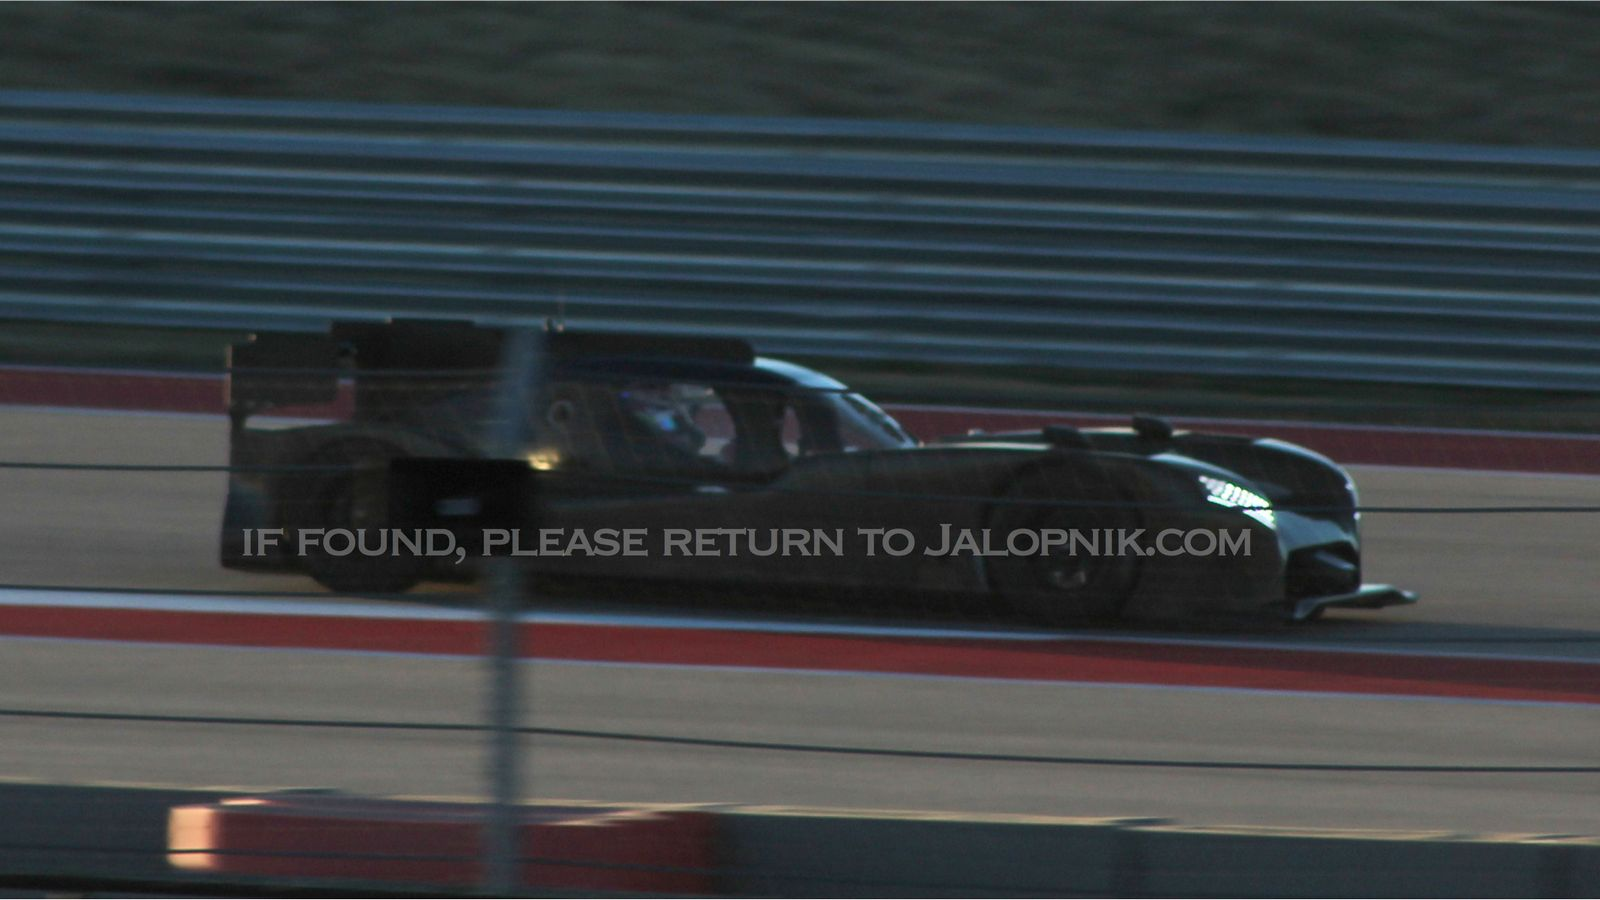 nissan gt r le mans racer spied at cota gtspirit. Black Bedroom Furniture Sets. Home Design Ideas